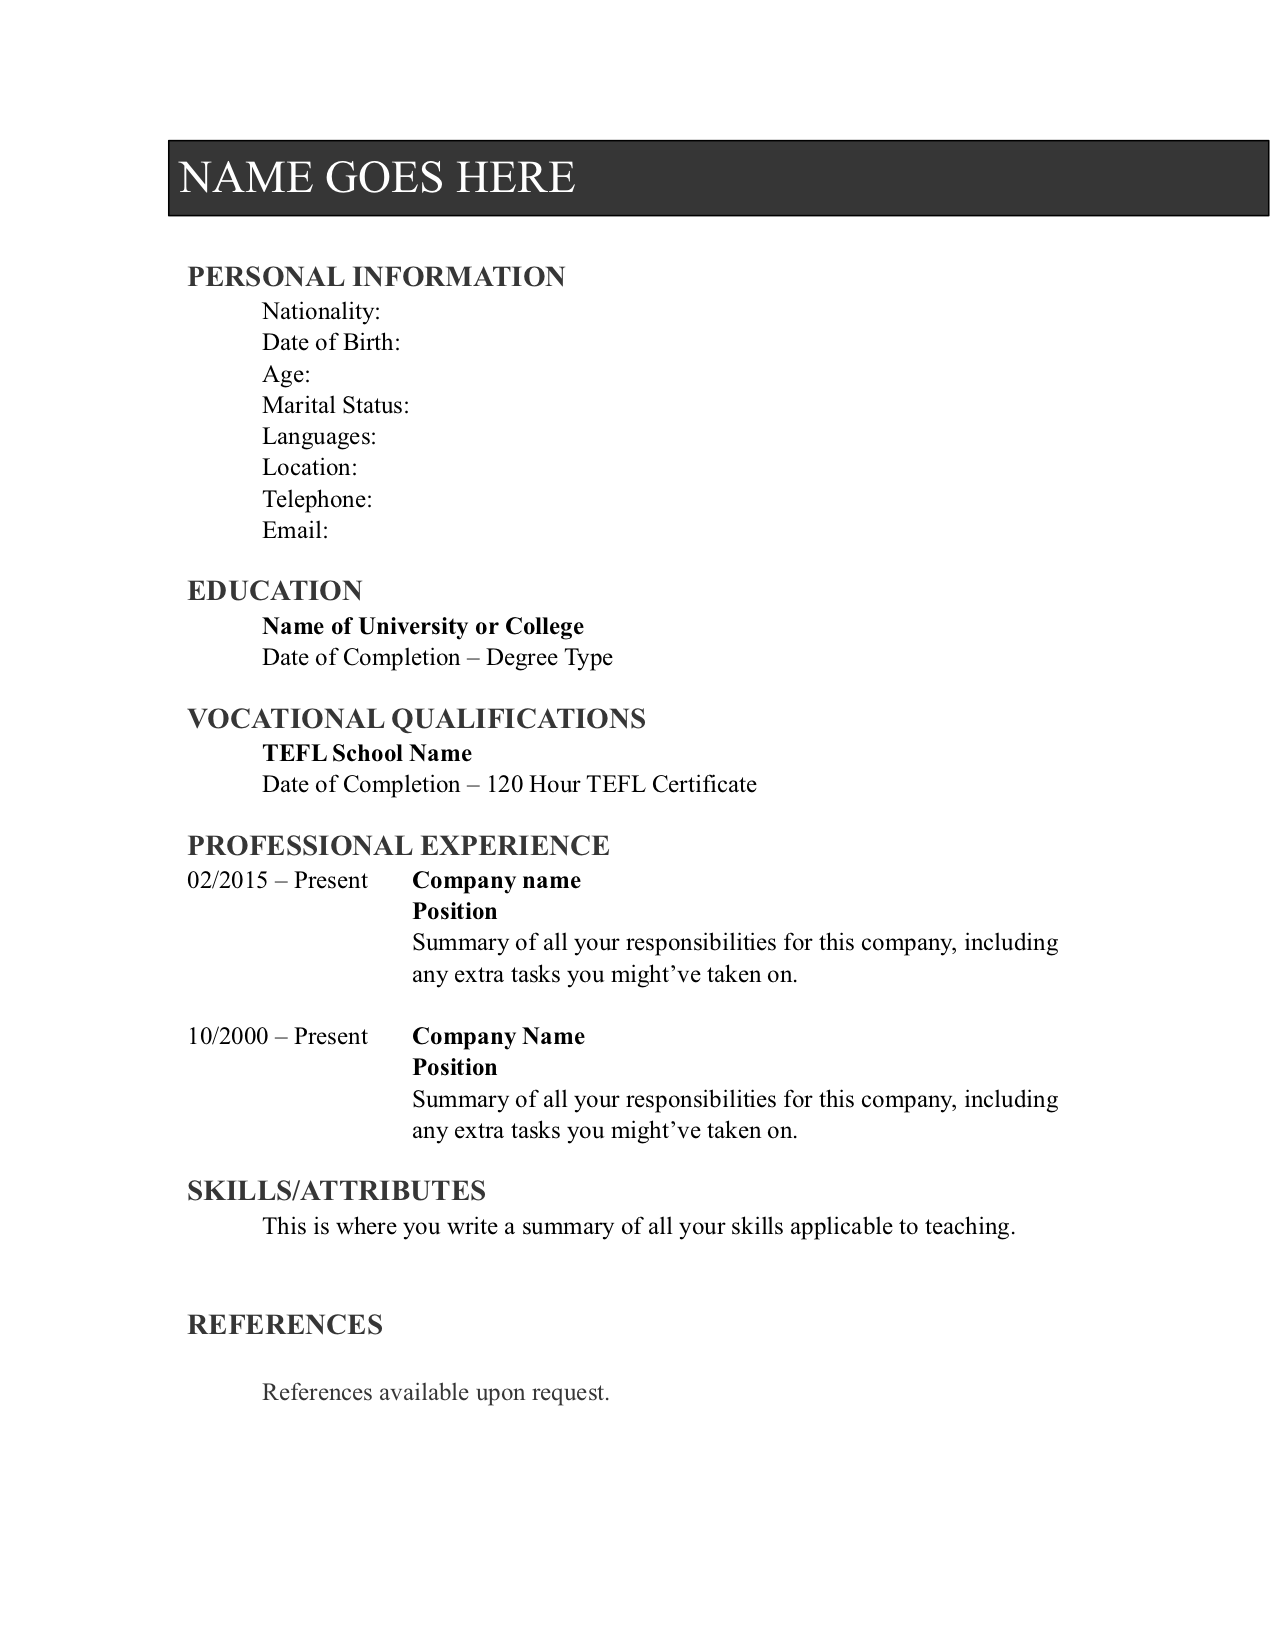 sample teaching resume CV